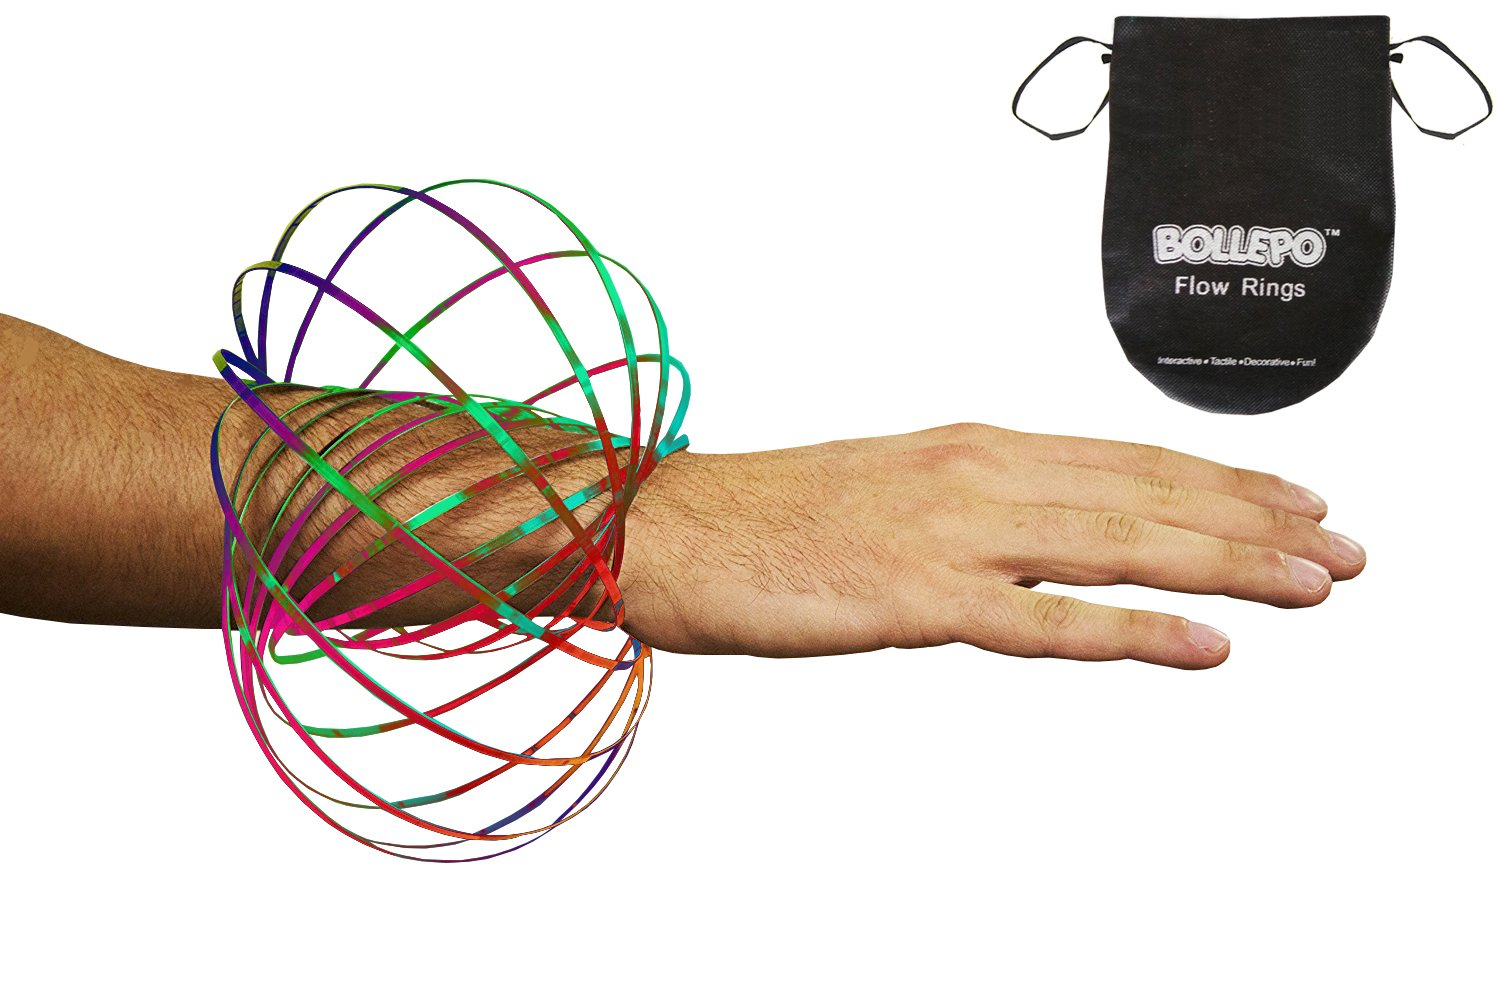 BOLLEPO Flow Ring Kinetic 3D Spring Toy Sculpture Ring Game Toy for Kids Boys and Girl, Rave Accessories, Festival Accessories (Rainbow)